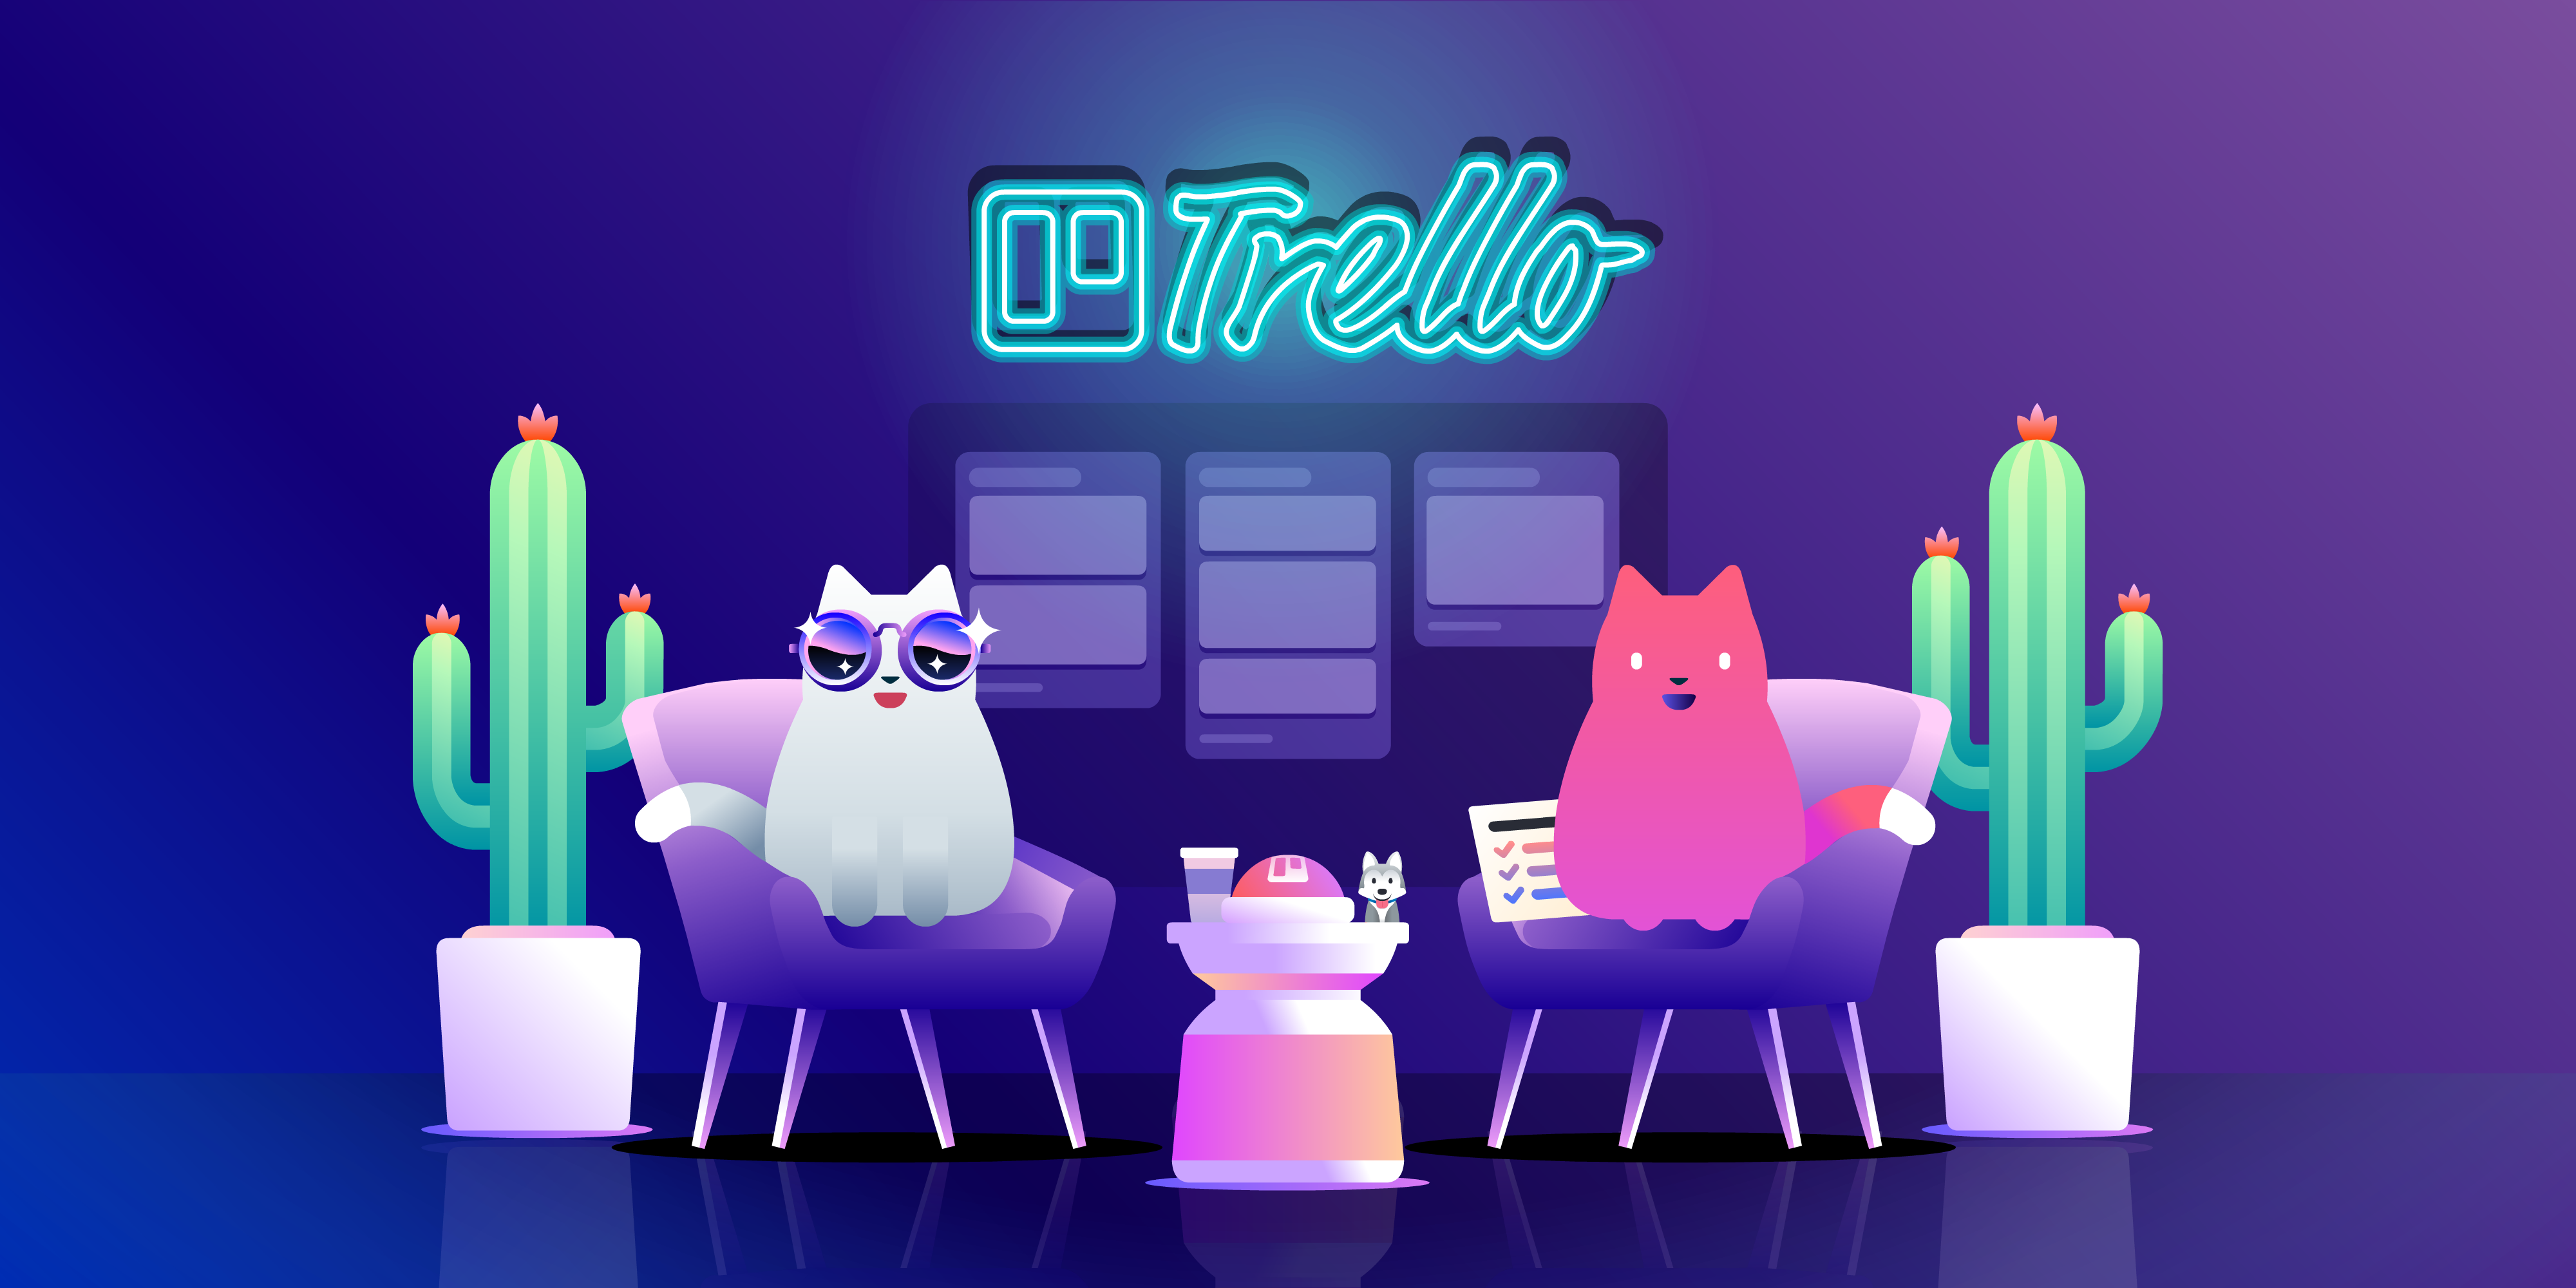 how to use Trello for 1:1 meetings